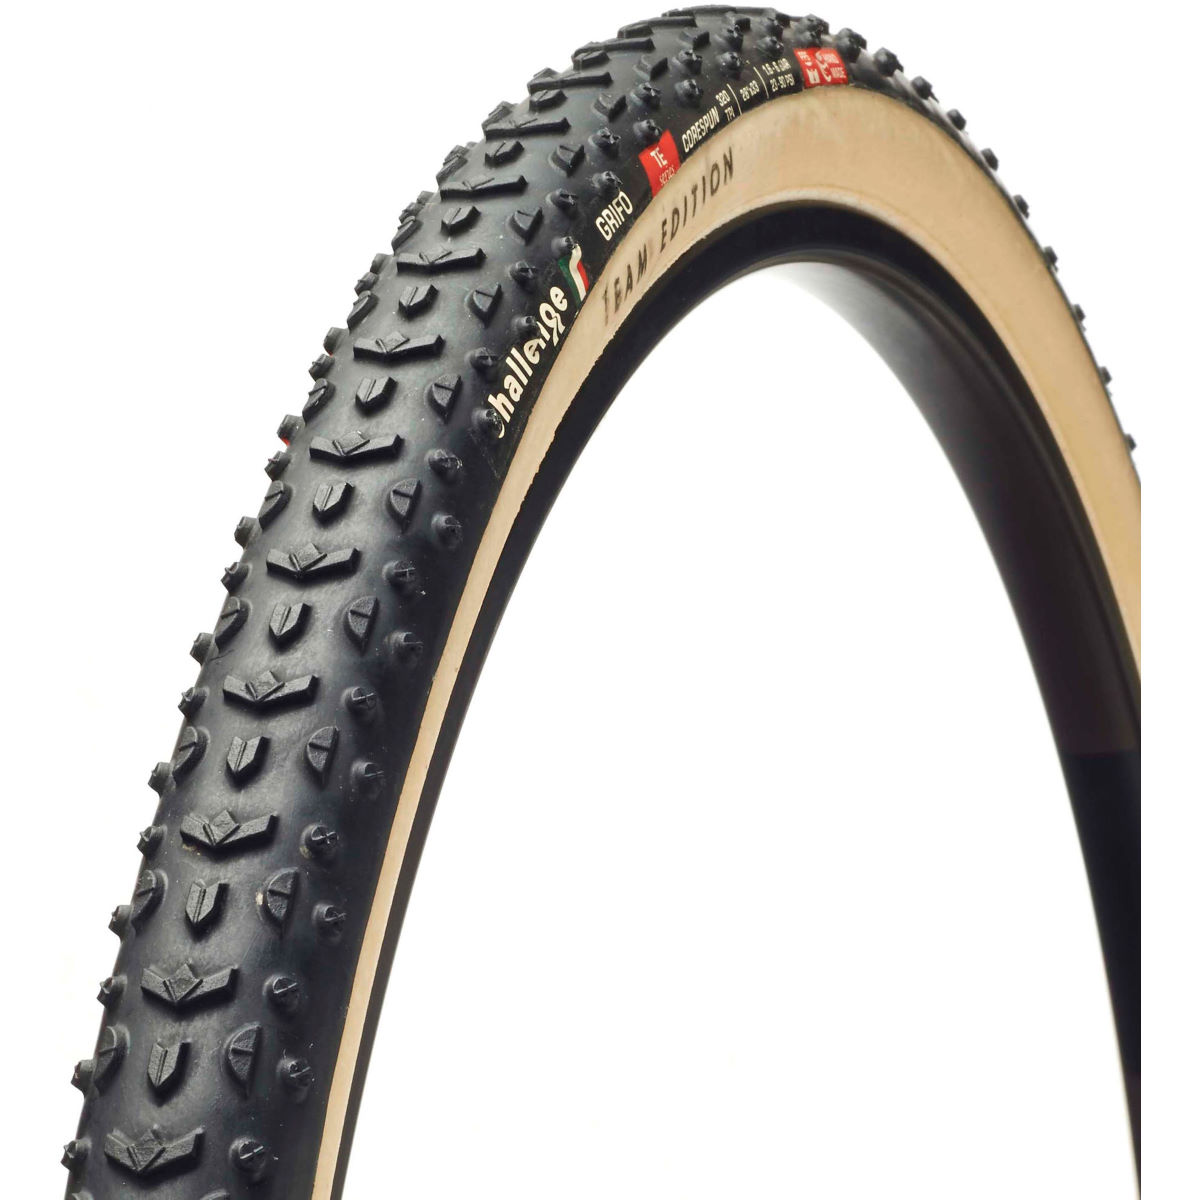 Pneu/Boyau de cyclo-cross Challenge Grifo 33 Team Edition - 700 x 33c Black/Brown Pneus cyclo-cross